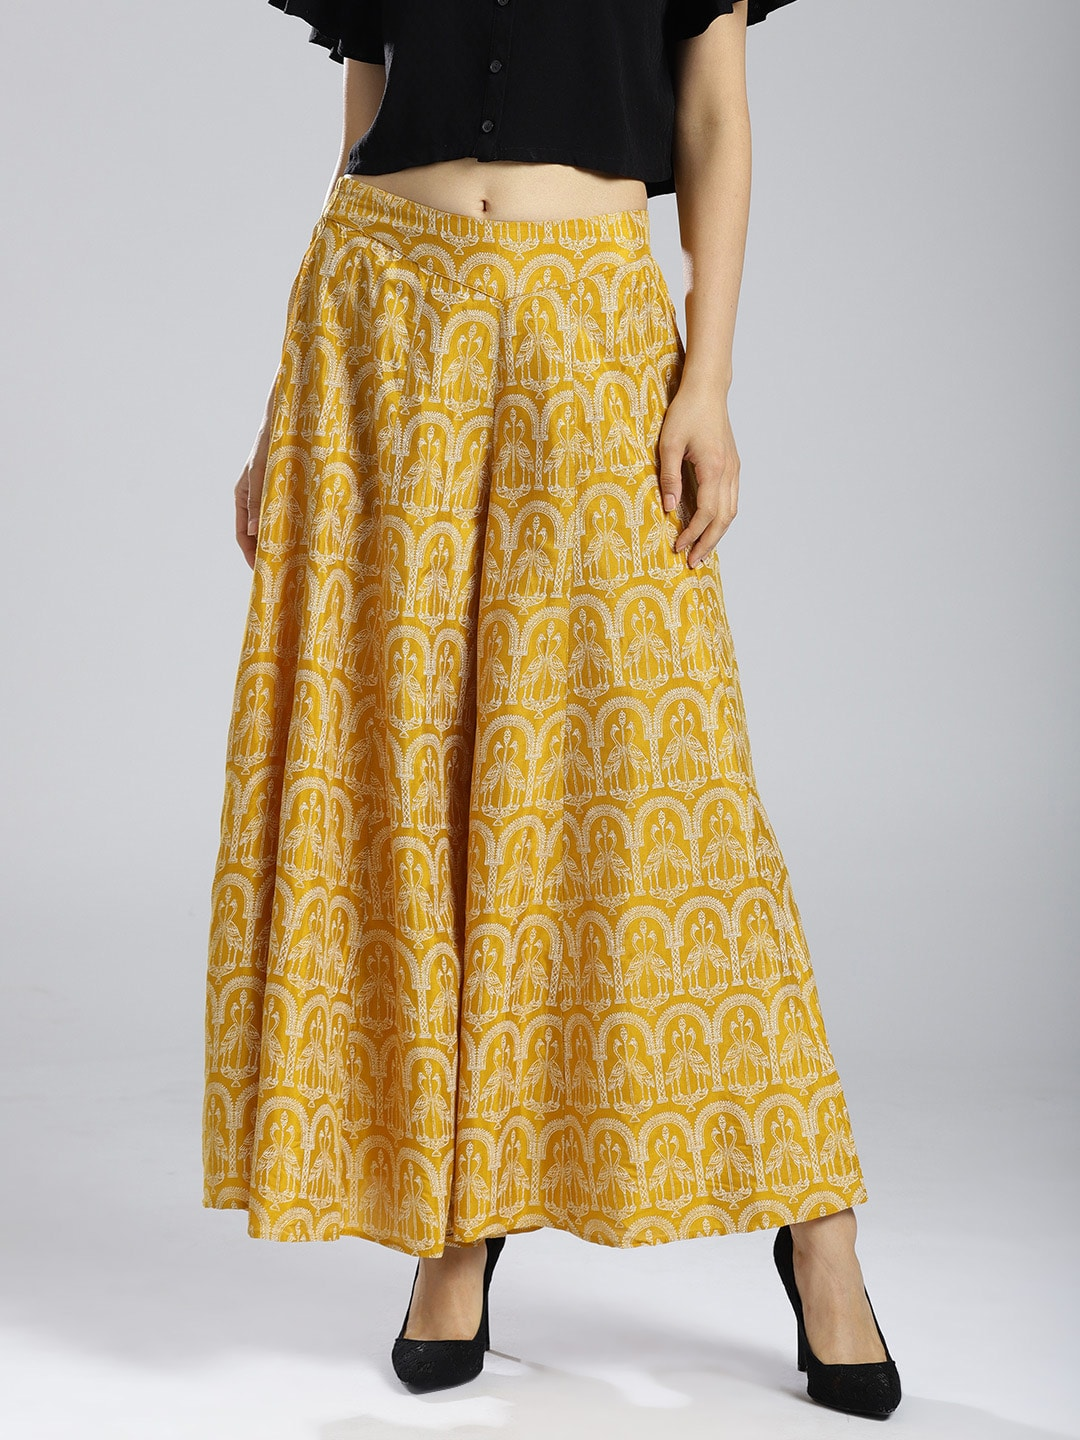 0477933a020 Palazzos - Buy Palazzo Pants Online for Women